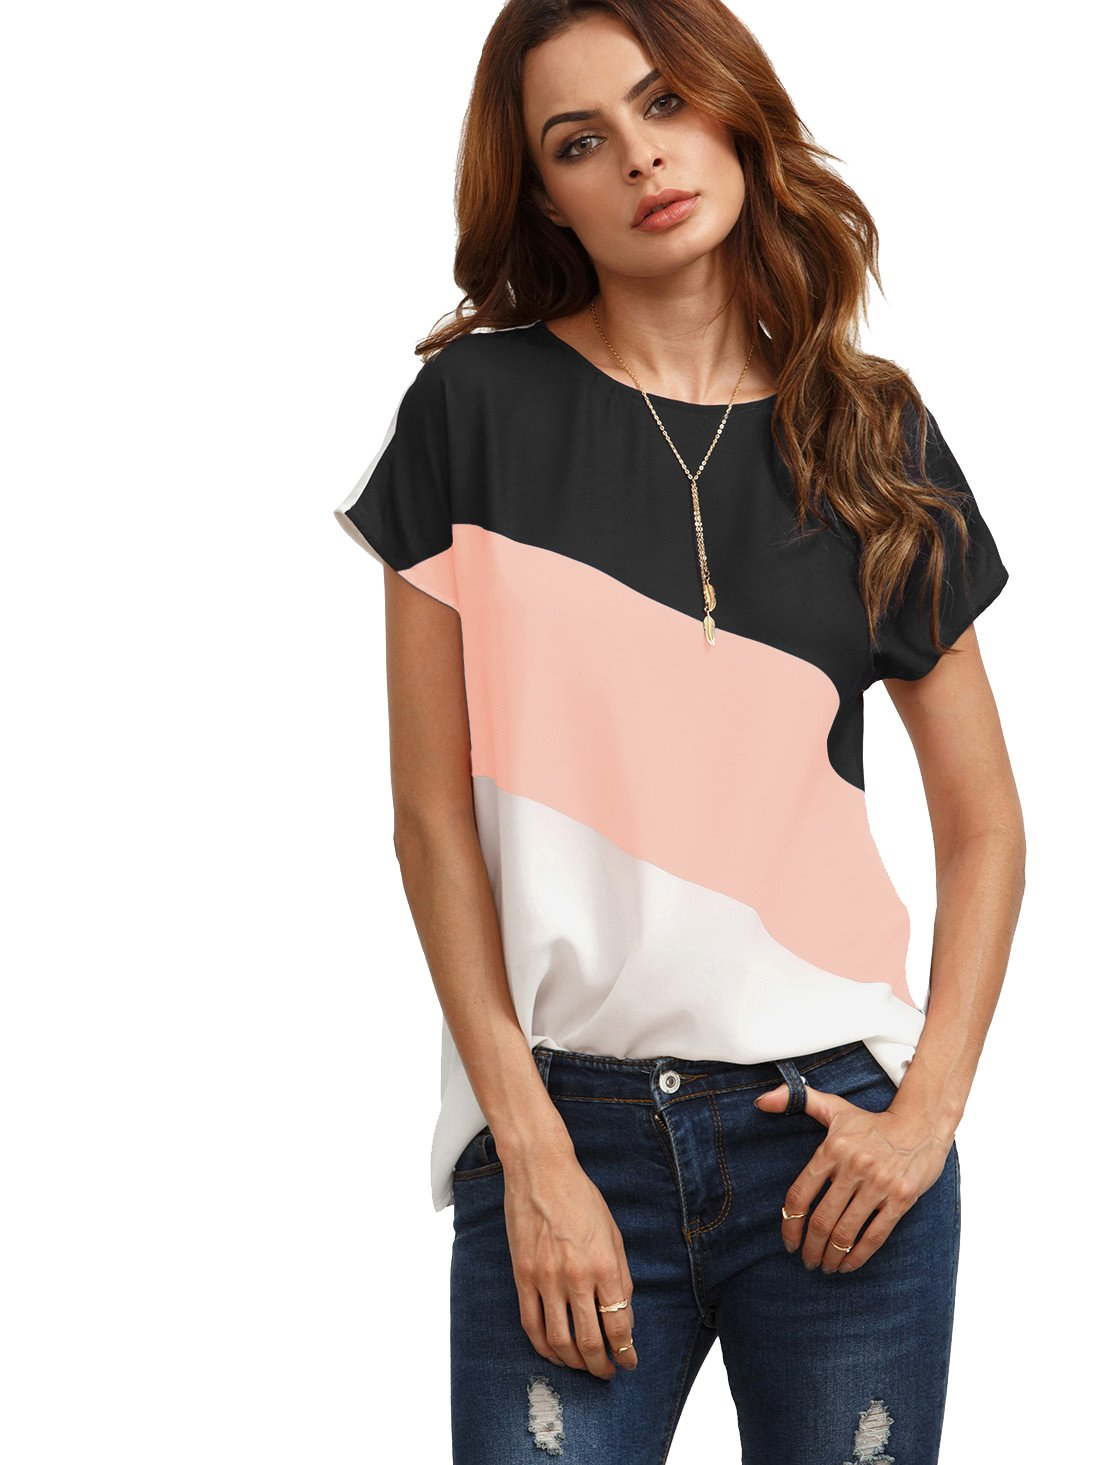 Romwe Women's Color Block Blouse Short Sleeve Casual Tee Shirts Tunic Tops Pink S